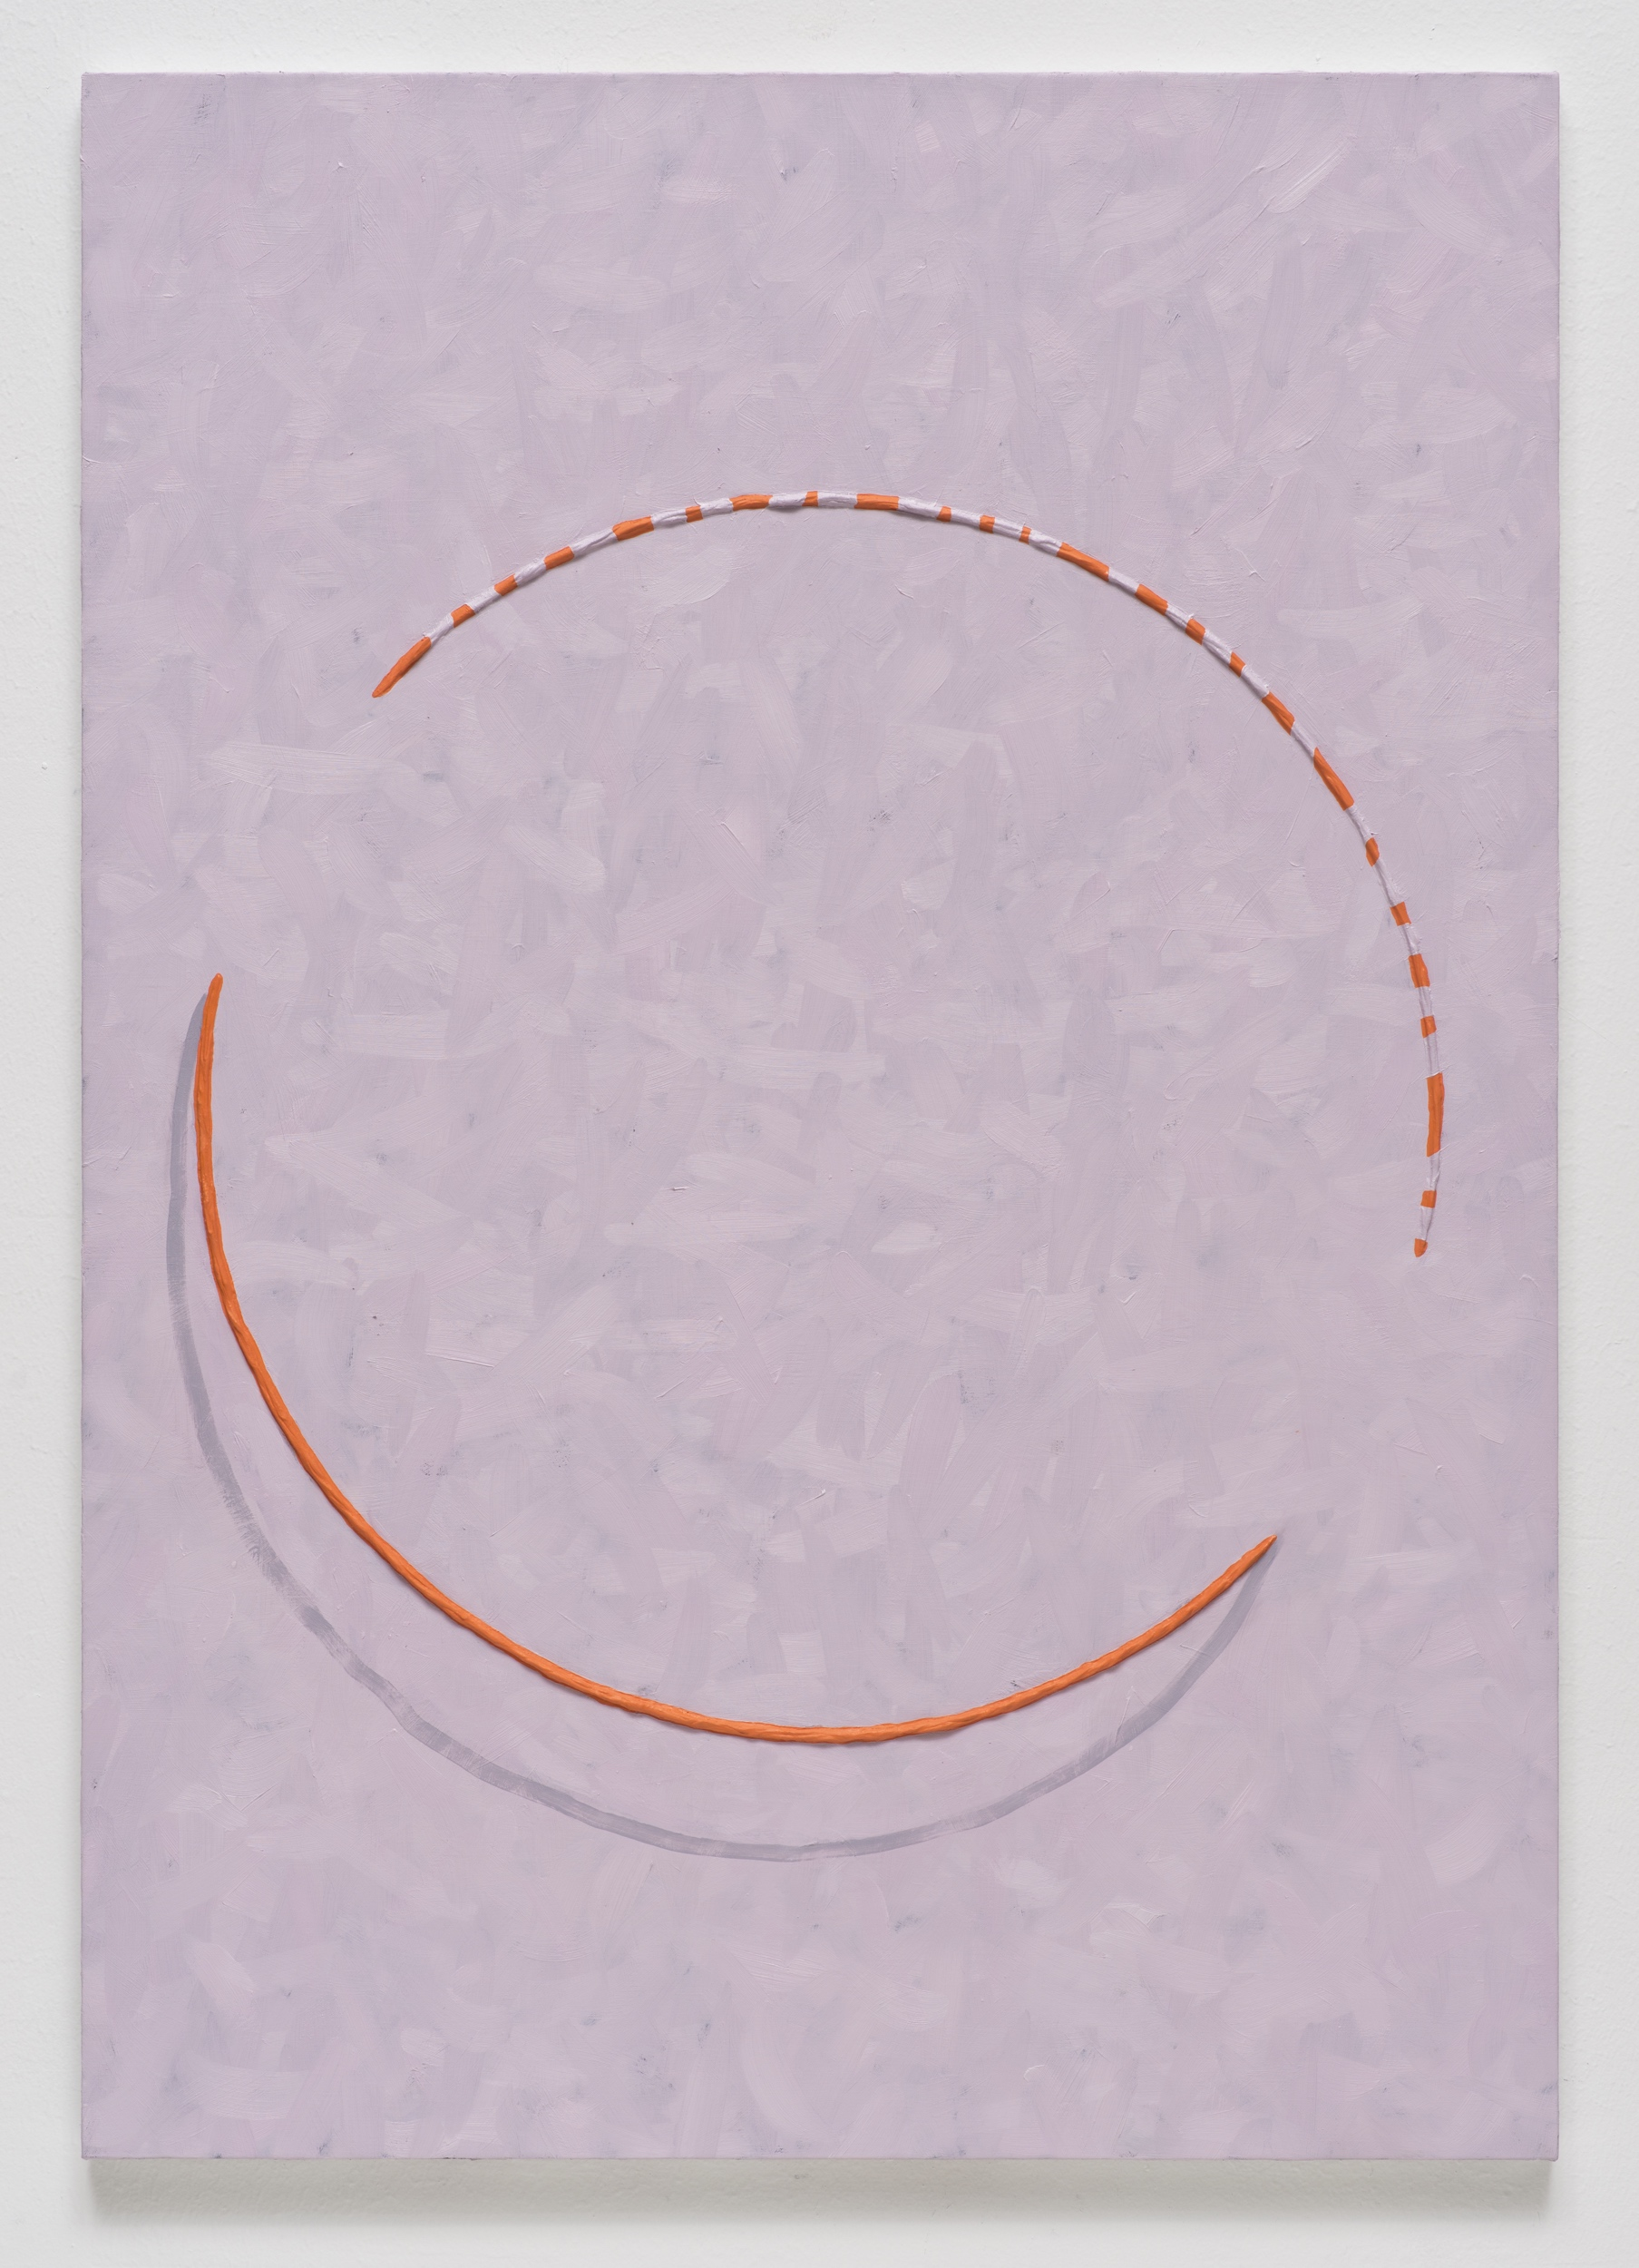 Alex Olson,  Lure 2 ,   2014, oil and modeling paste on linen, 41 x 29 inches (104.1 x 73.7 cm)